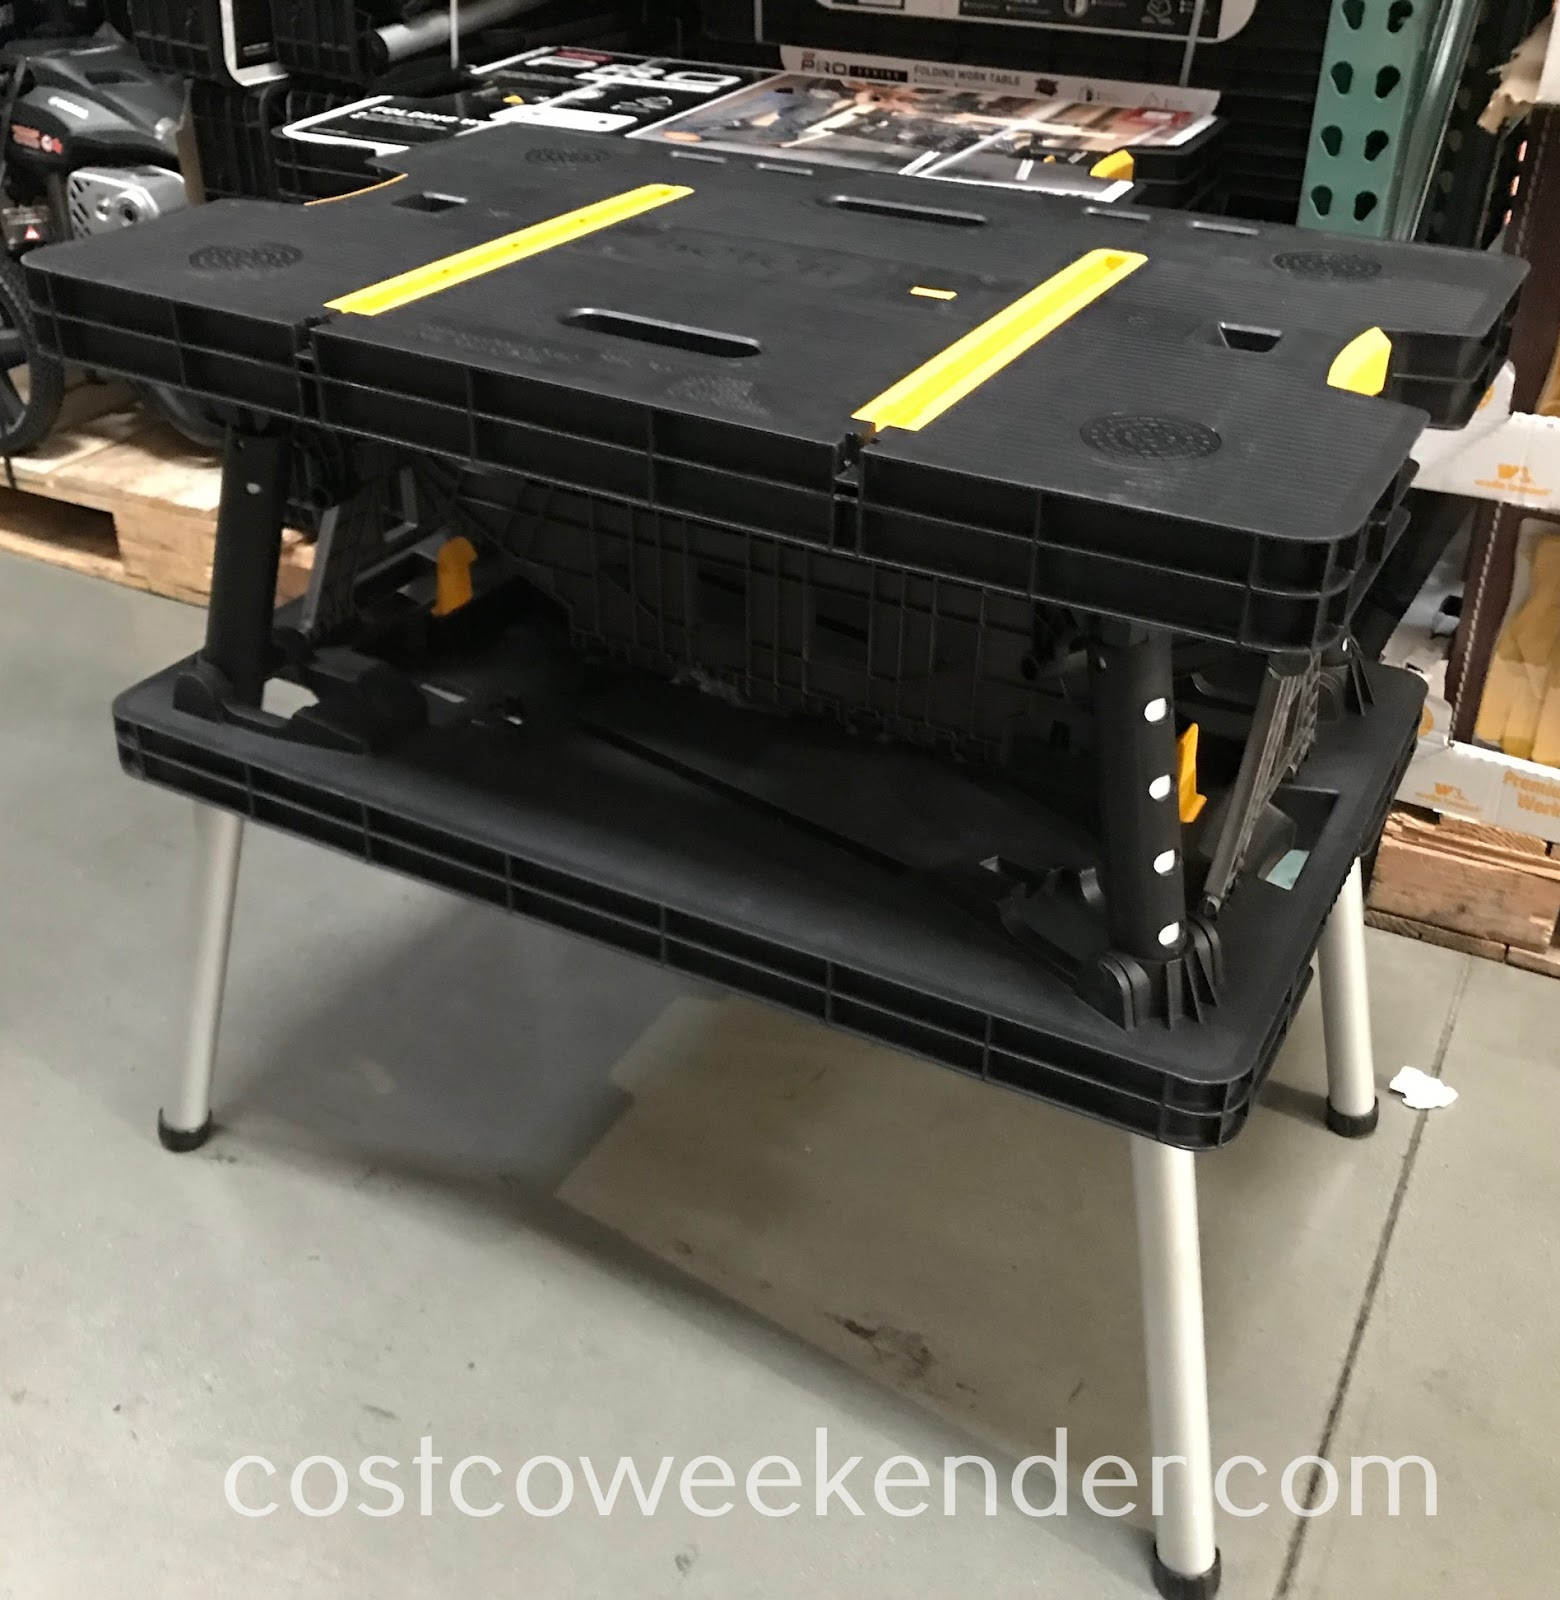 Easily work on diy projects with the Keter Folding Work Table